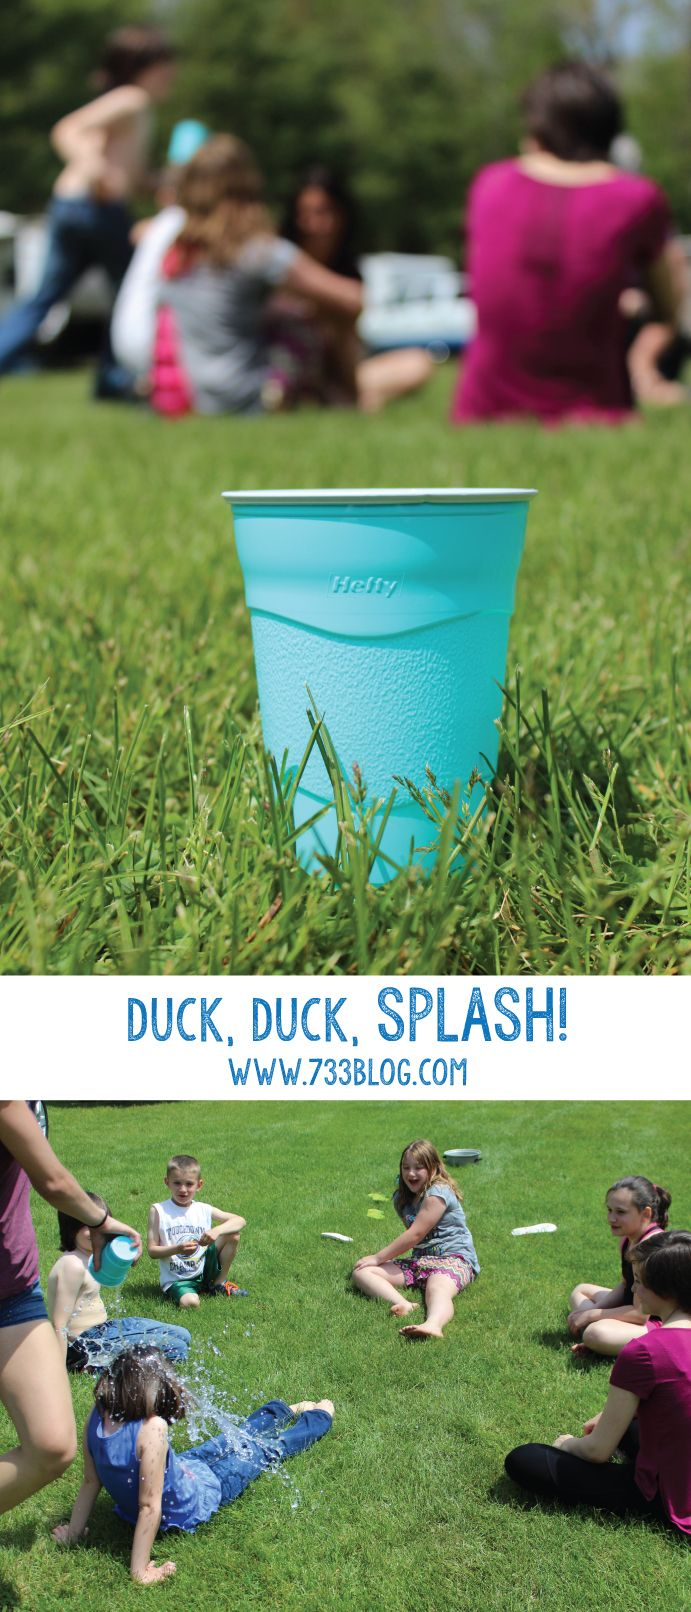 Try this fun take on the classic Duck, Duck, Goose Children's Game! All you need is a cup, some water and some kids ready to get soaked!